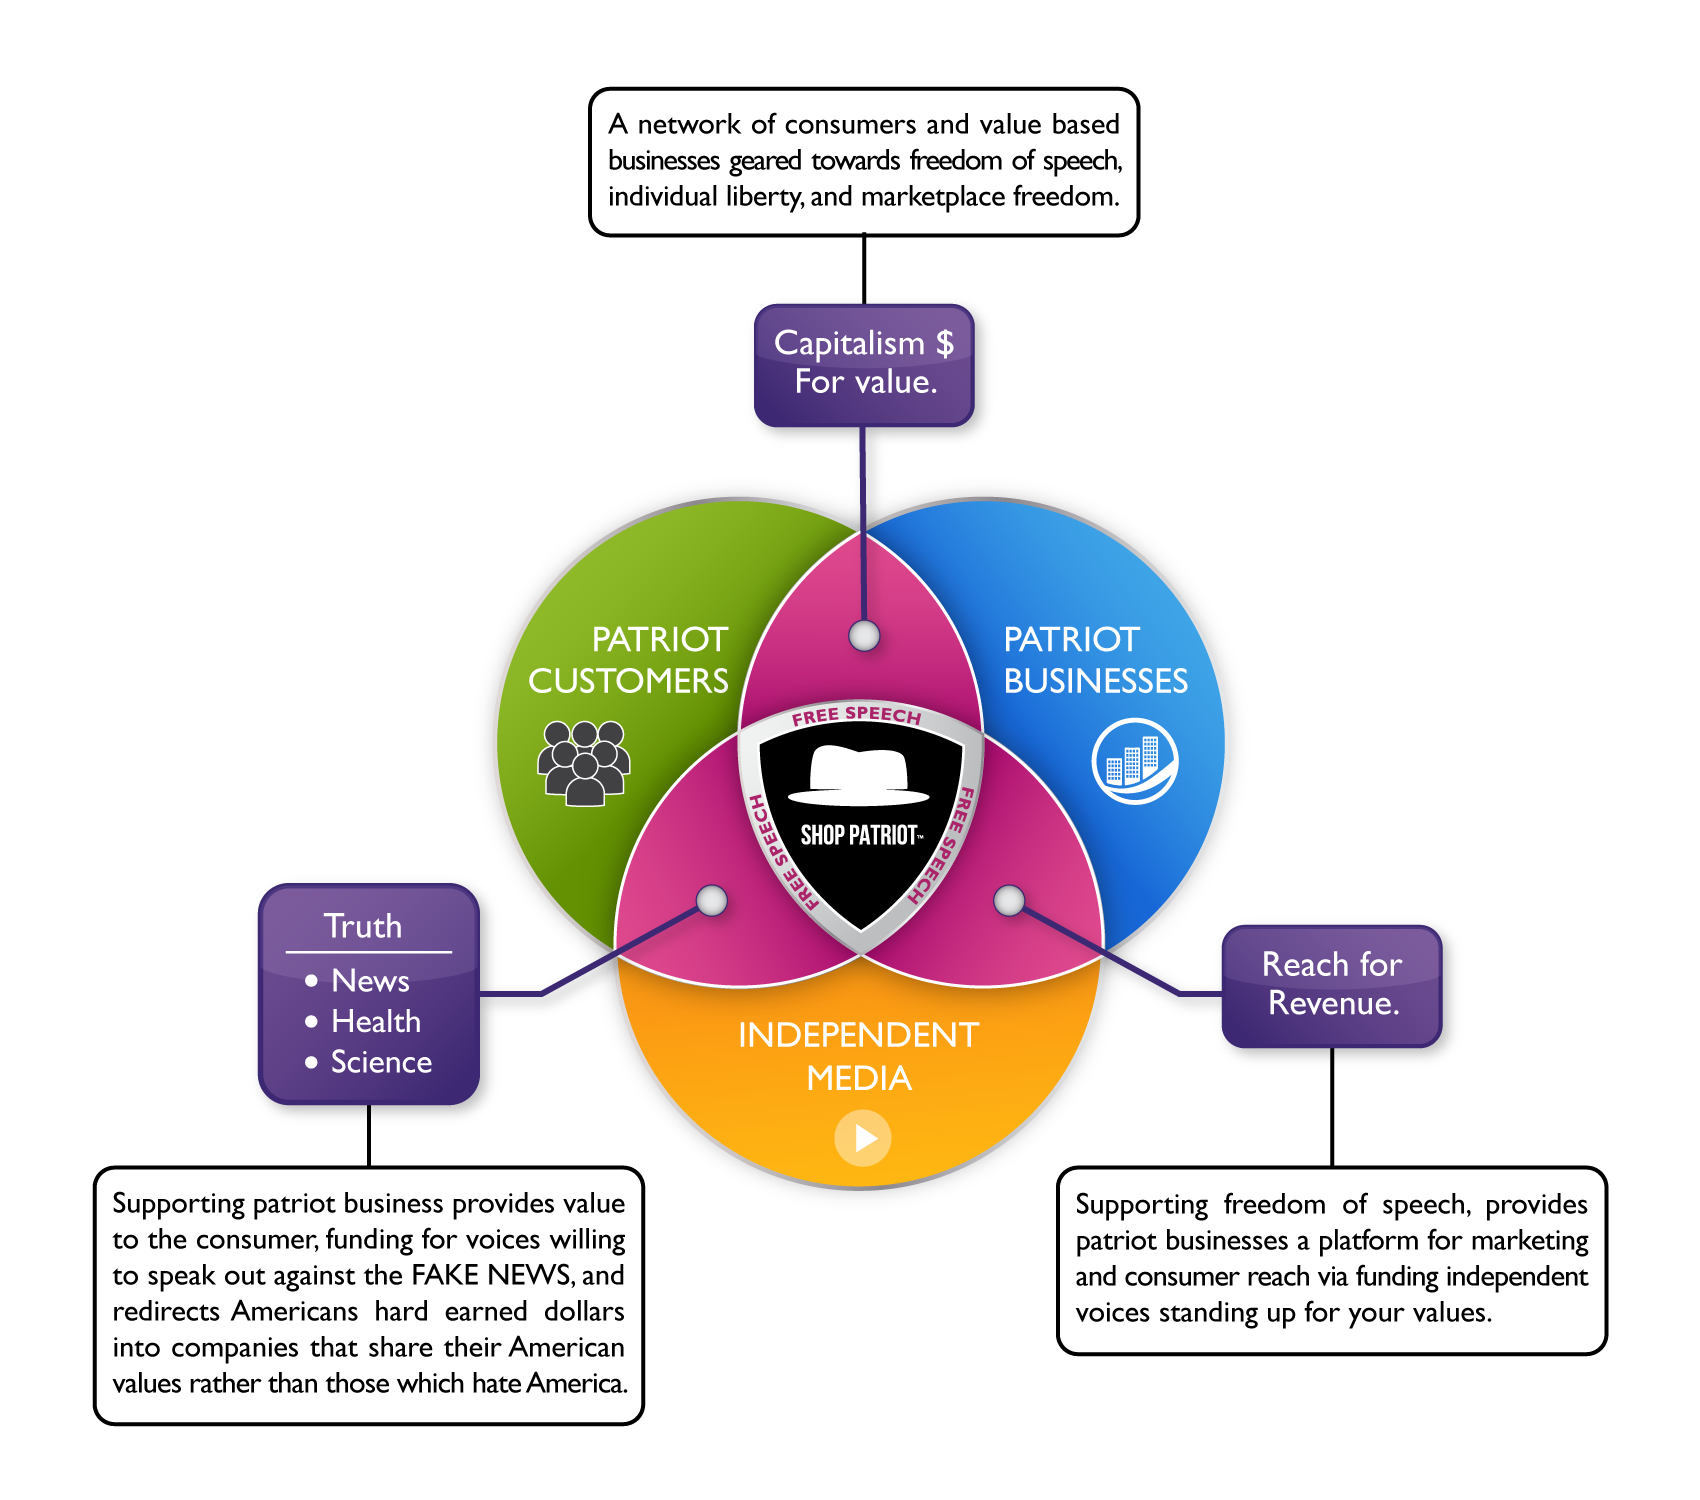 WhiteHat-strategy-infographic